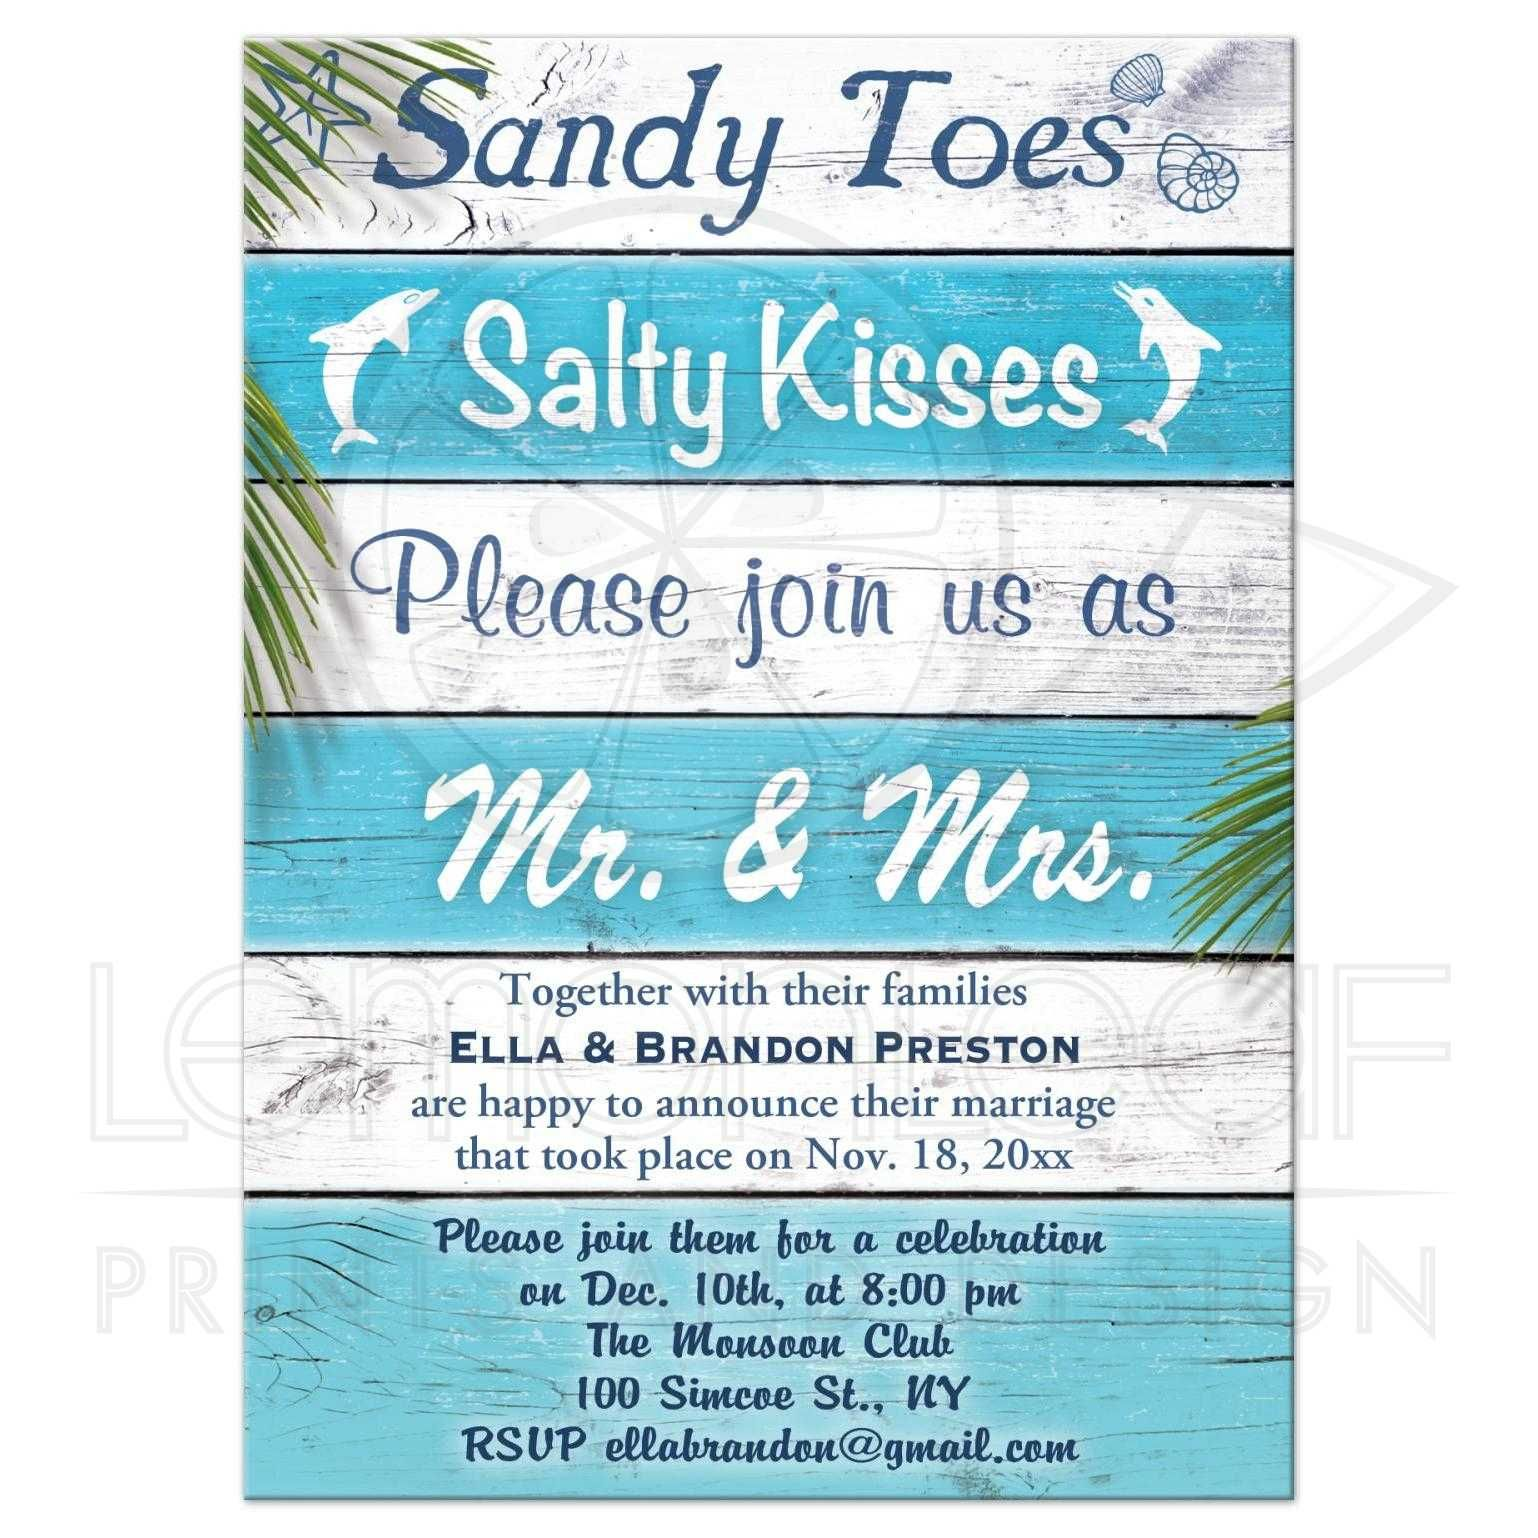 post wedding reception invitations Post Wedding Reception Turquoise Beach Sandy Toes Salty Kisses